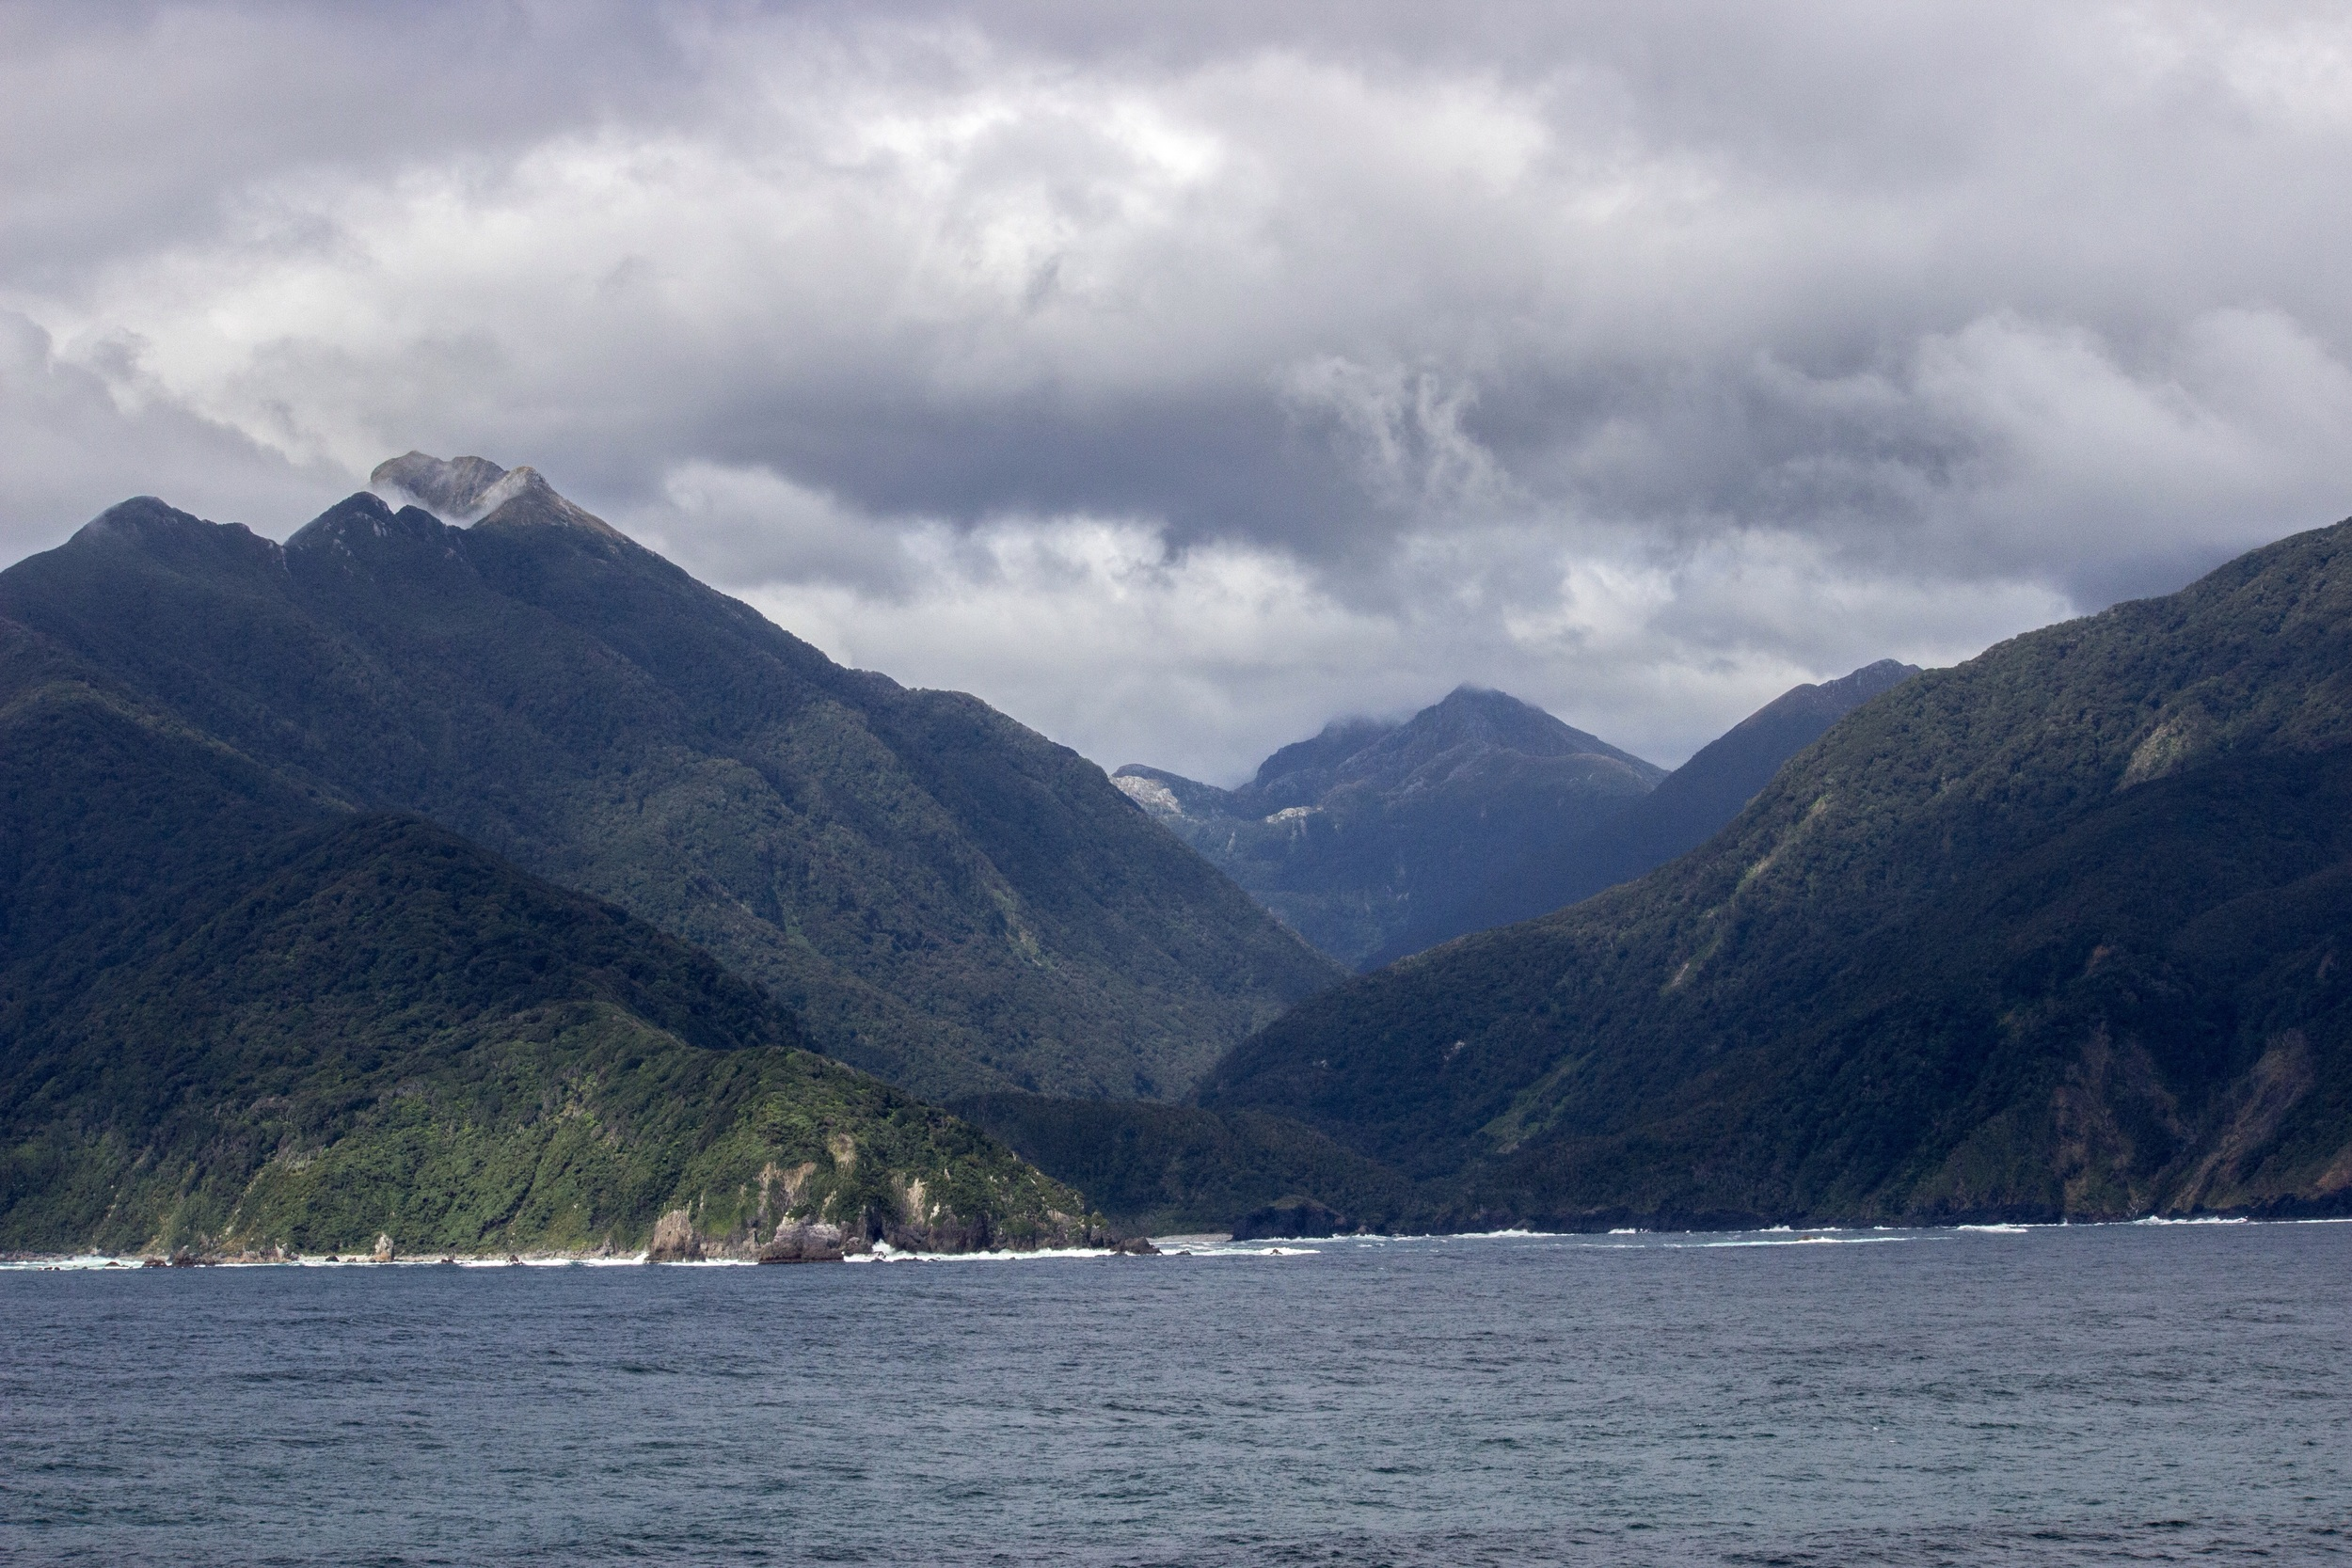 Moody mountains of the Fiordland coastline. South Island, New Zealand.